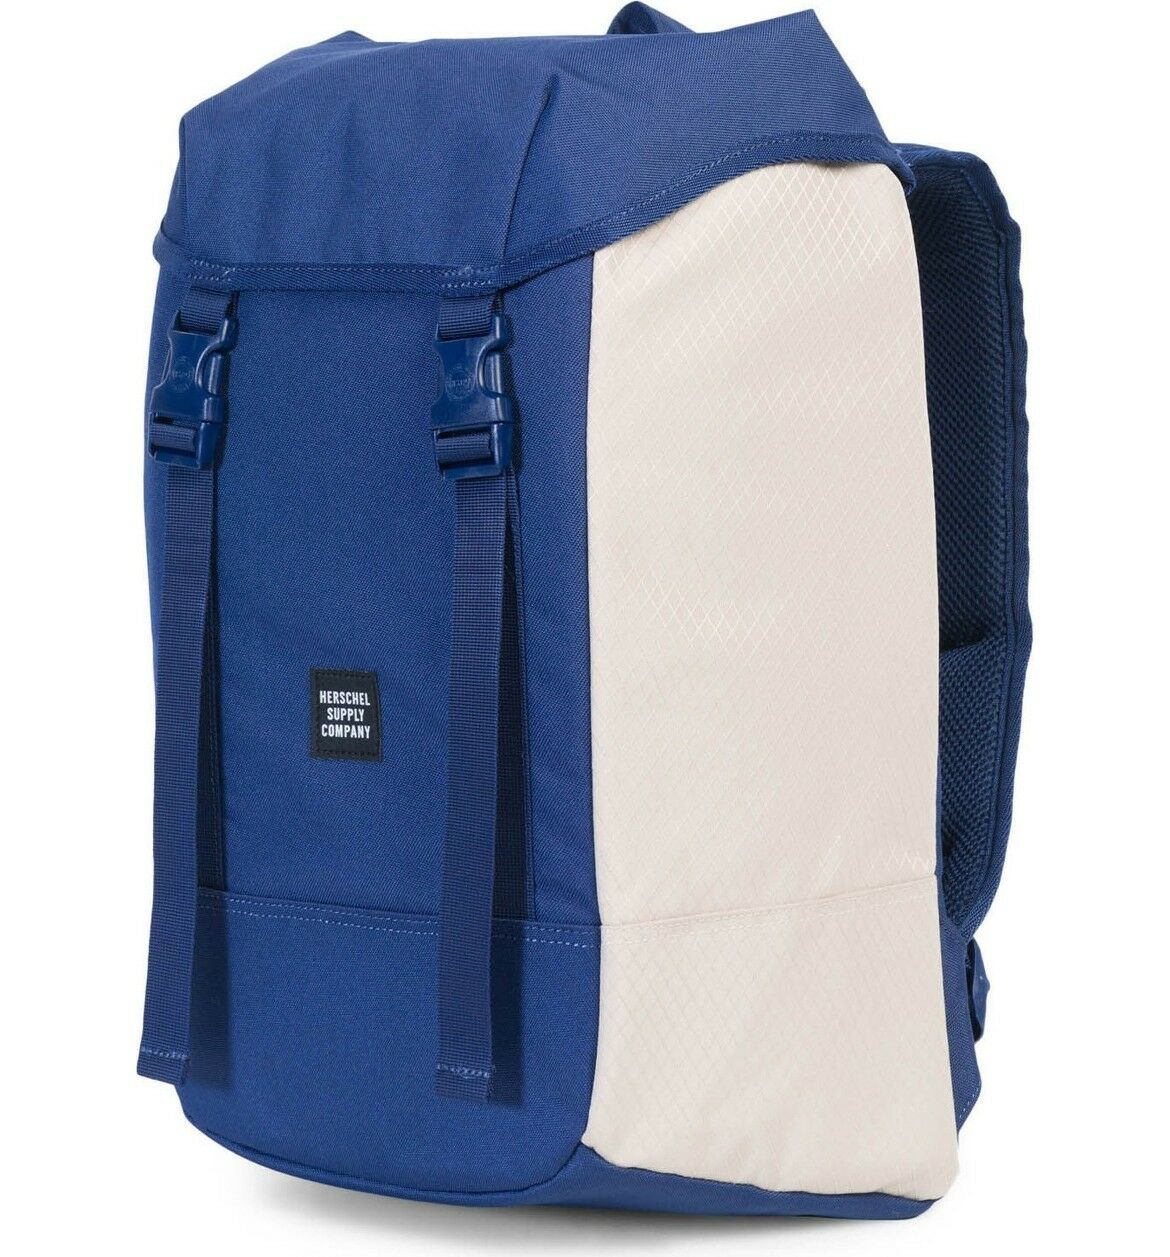 61a238ce2c9 Herschel Supply Co. Iona Backpack Twilight Blue Pelican for sale ...